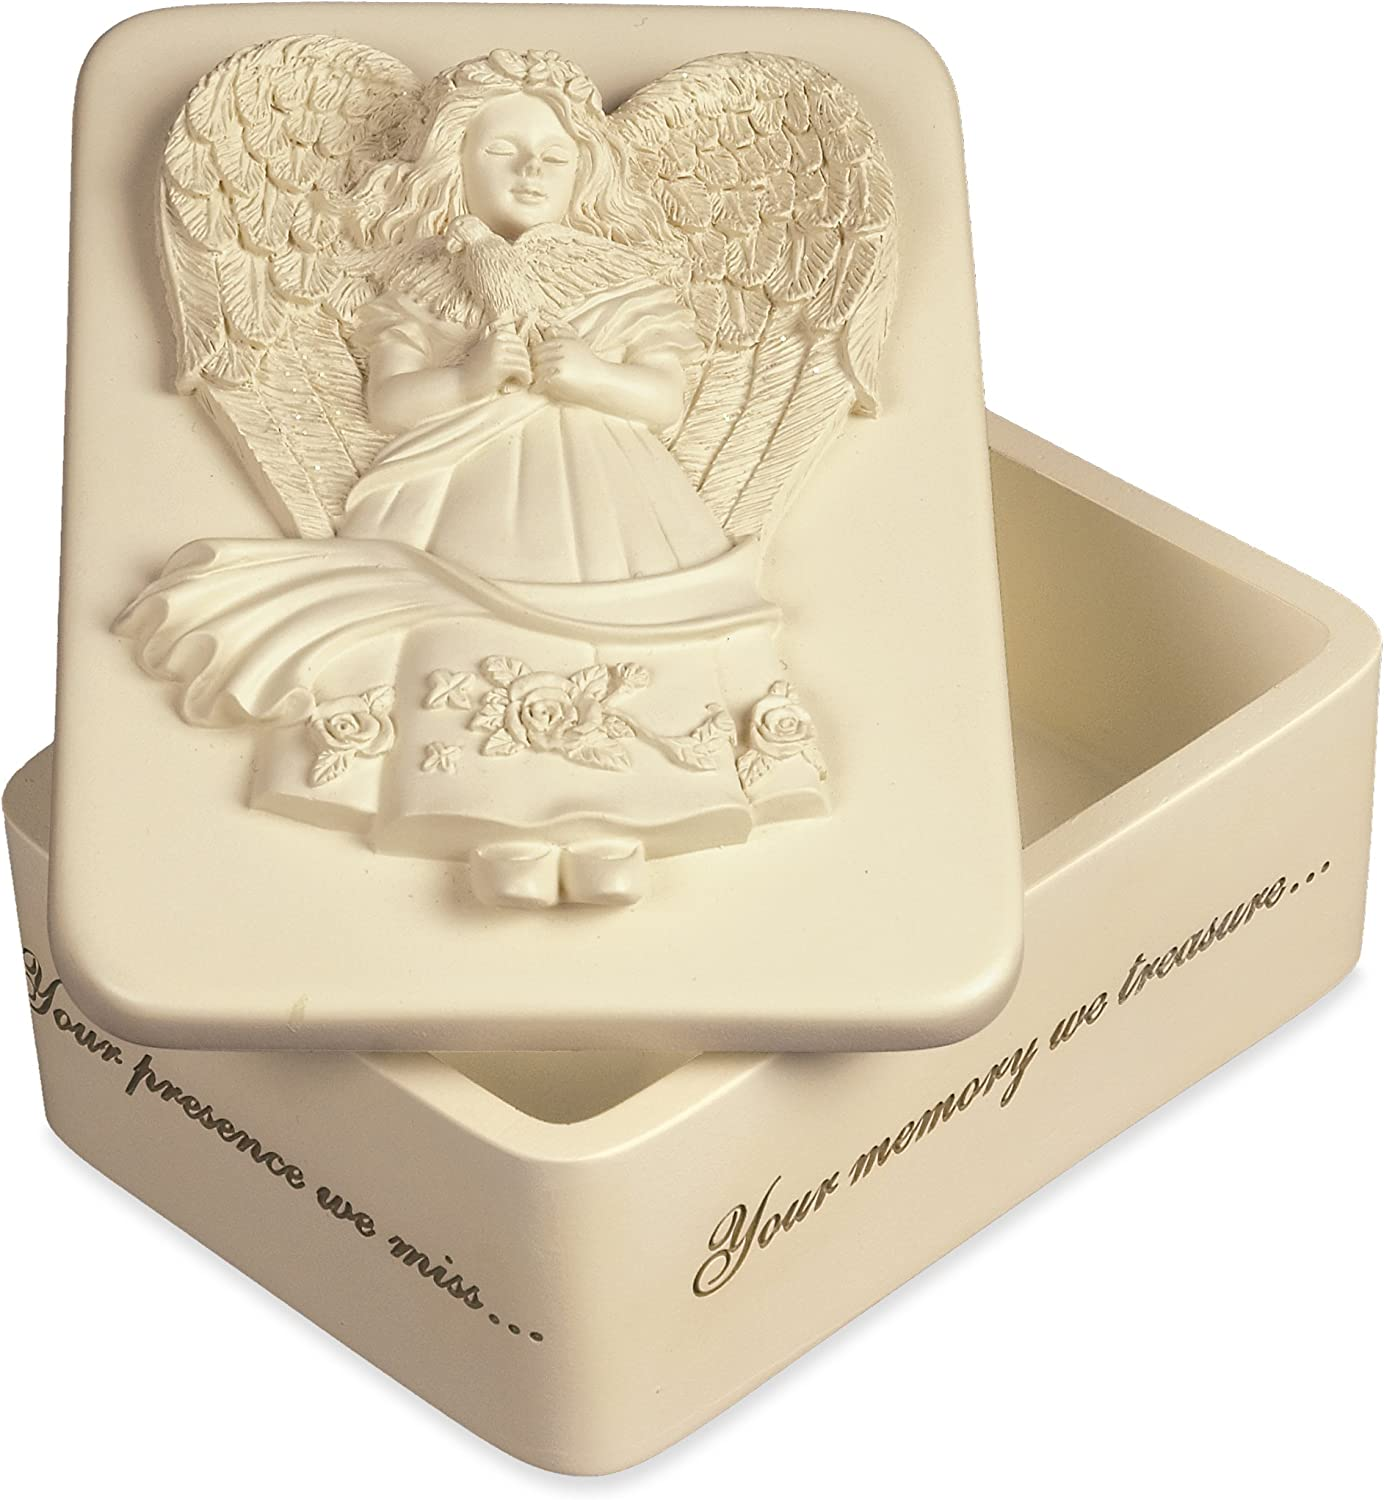 AngelStar Angel of Peace Keepsake Box, 3-1/4 by 4-1/2 by 2-Inch, 8 Cubic Inch